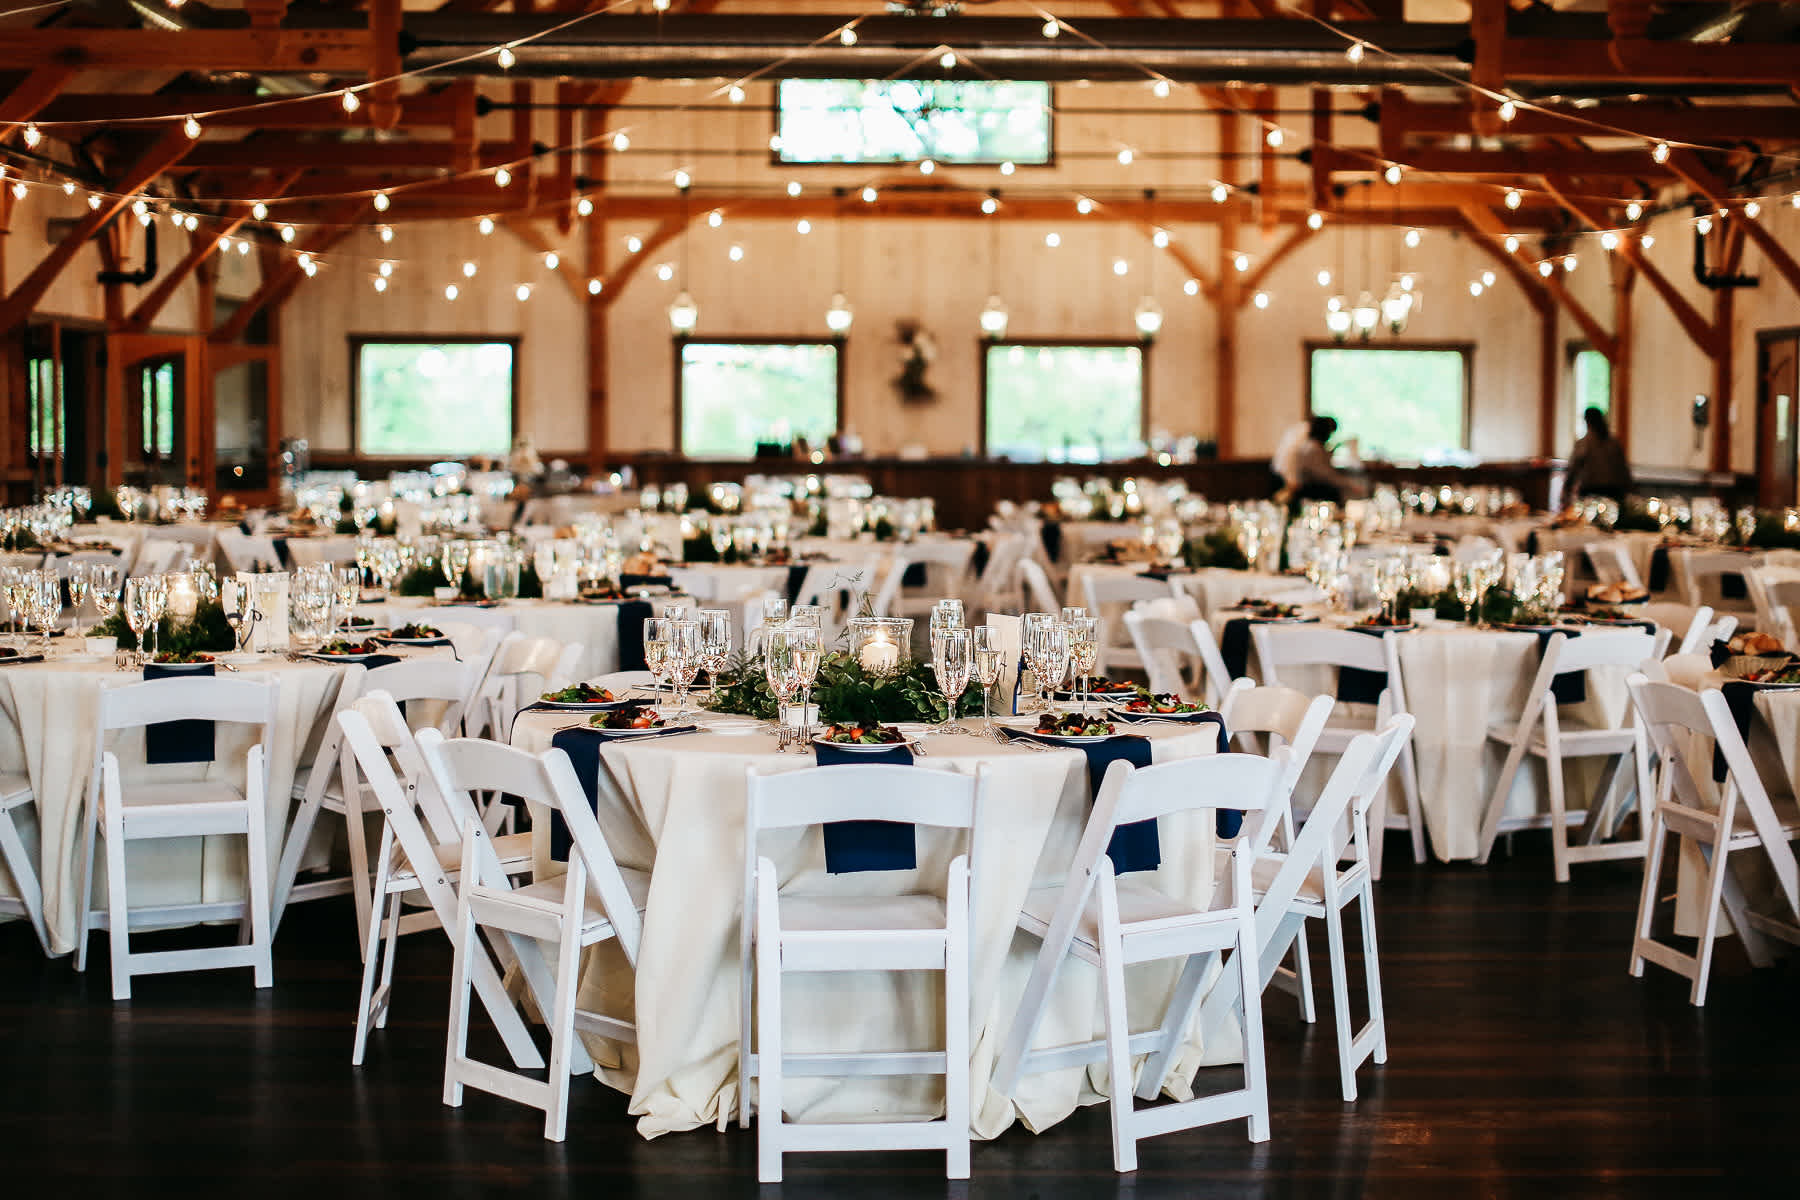 Pennsylvania-Newton-Rosebank-winery-spring-lifestyle-wedding-110